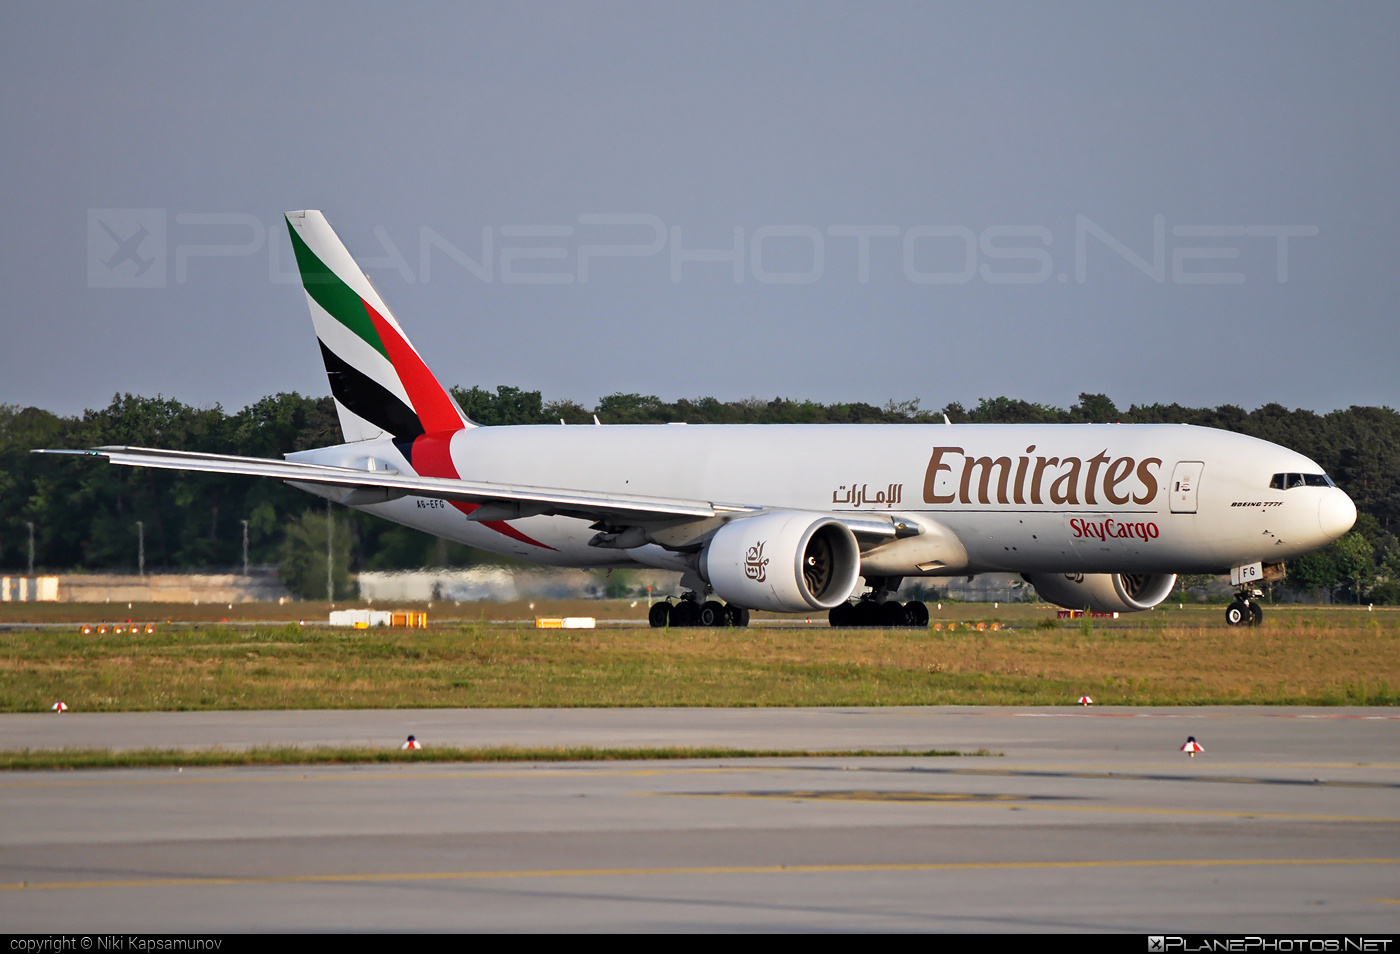 Boeing 777F - A6-EFG operated by Emirates SkyCargo #b777 #b777f #b777freighter #boeing #boeing777 #tripleseven